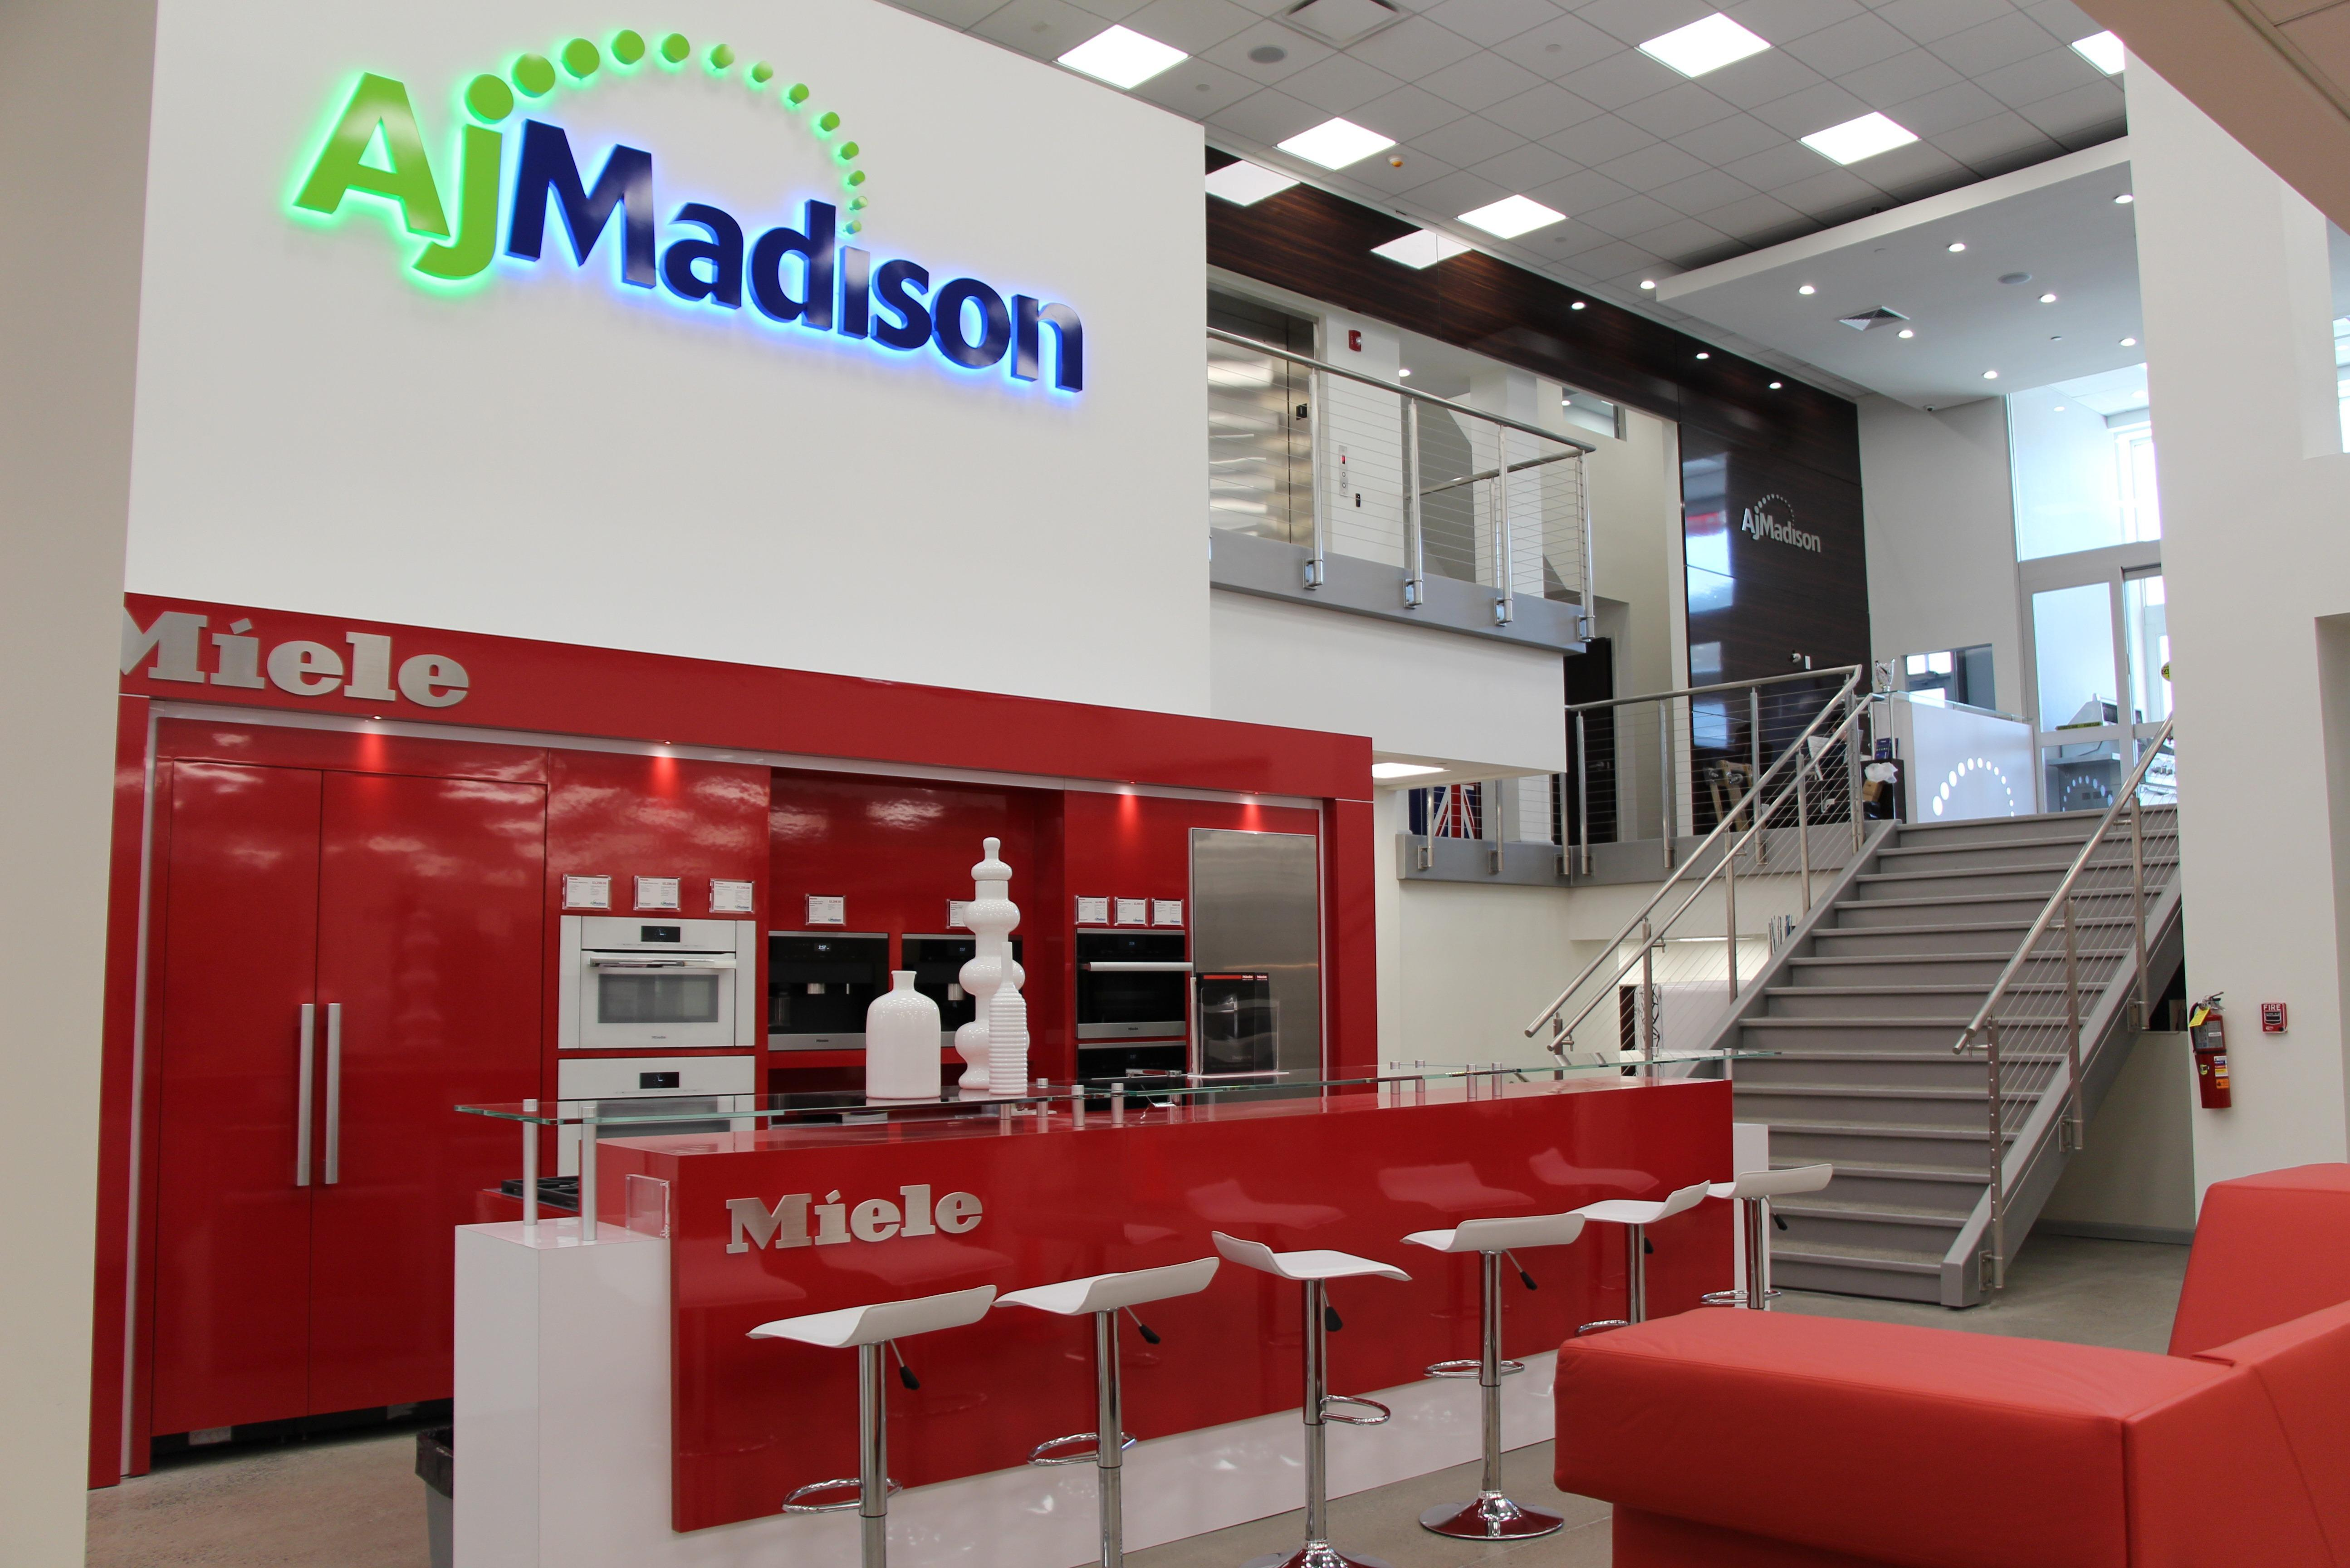 AJ Madison Home & Kitchen Appliances Store and More image 0